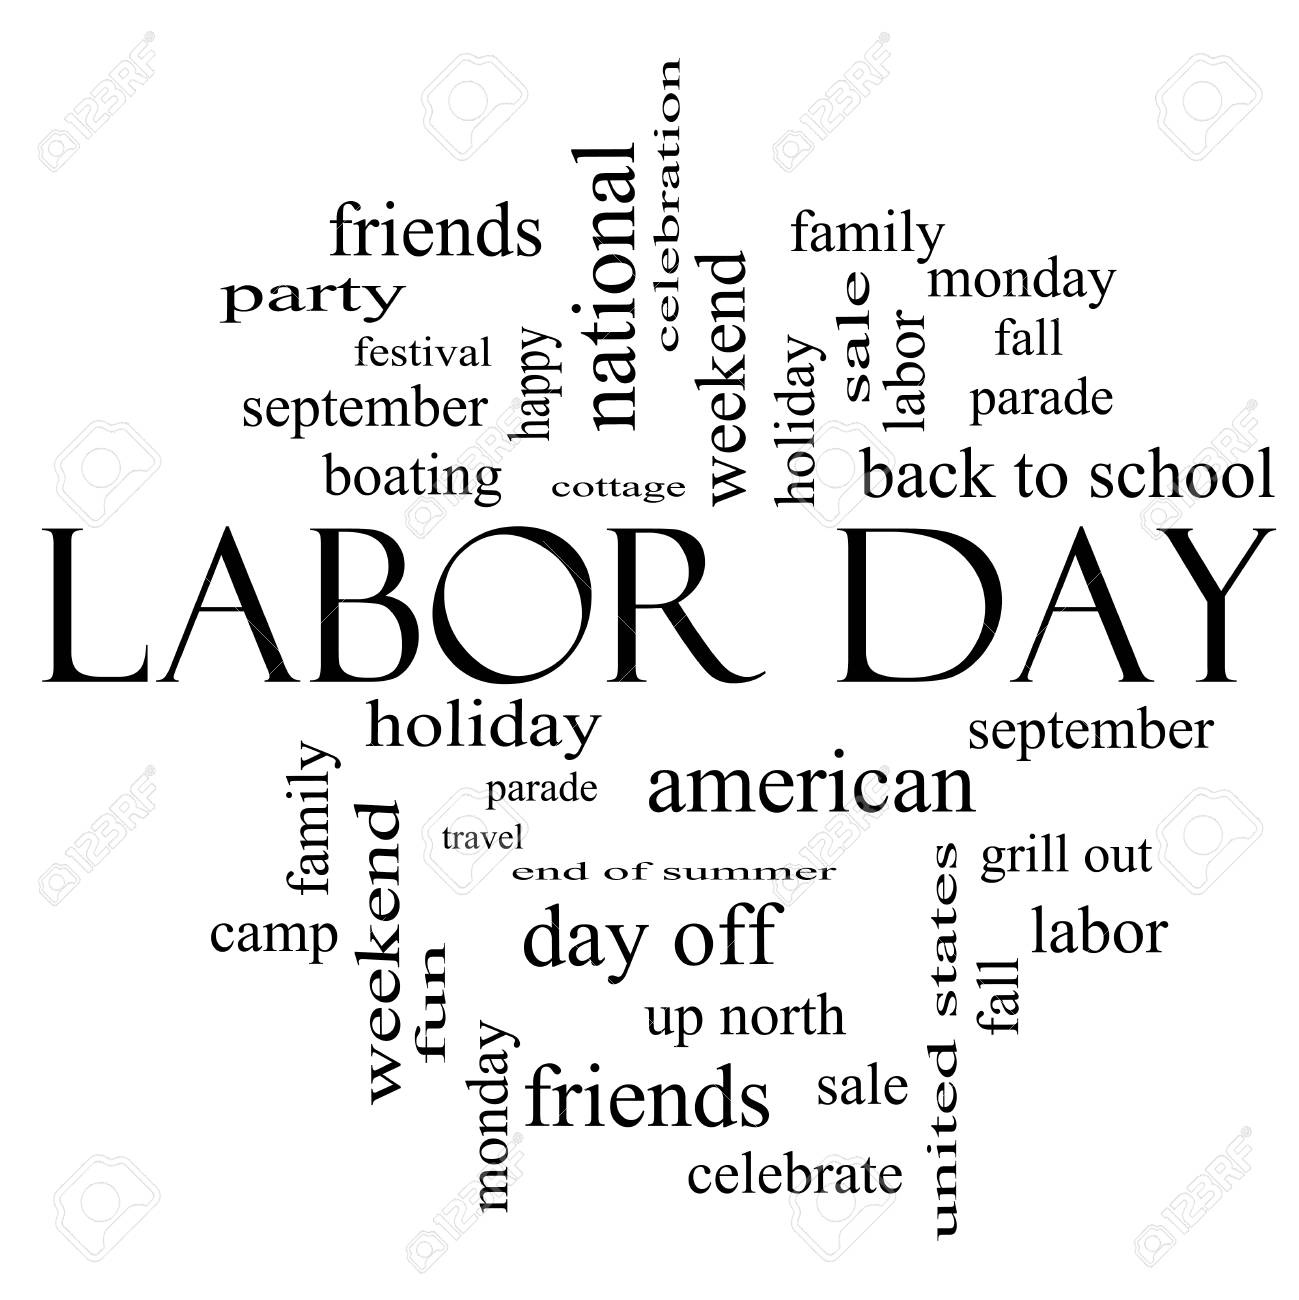 Labor Day Word Cloud Concept In Black And White With Great Terms Such As Holiday